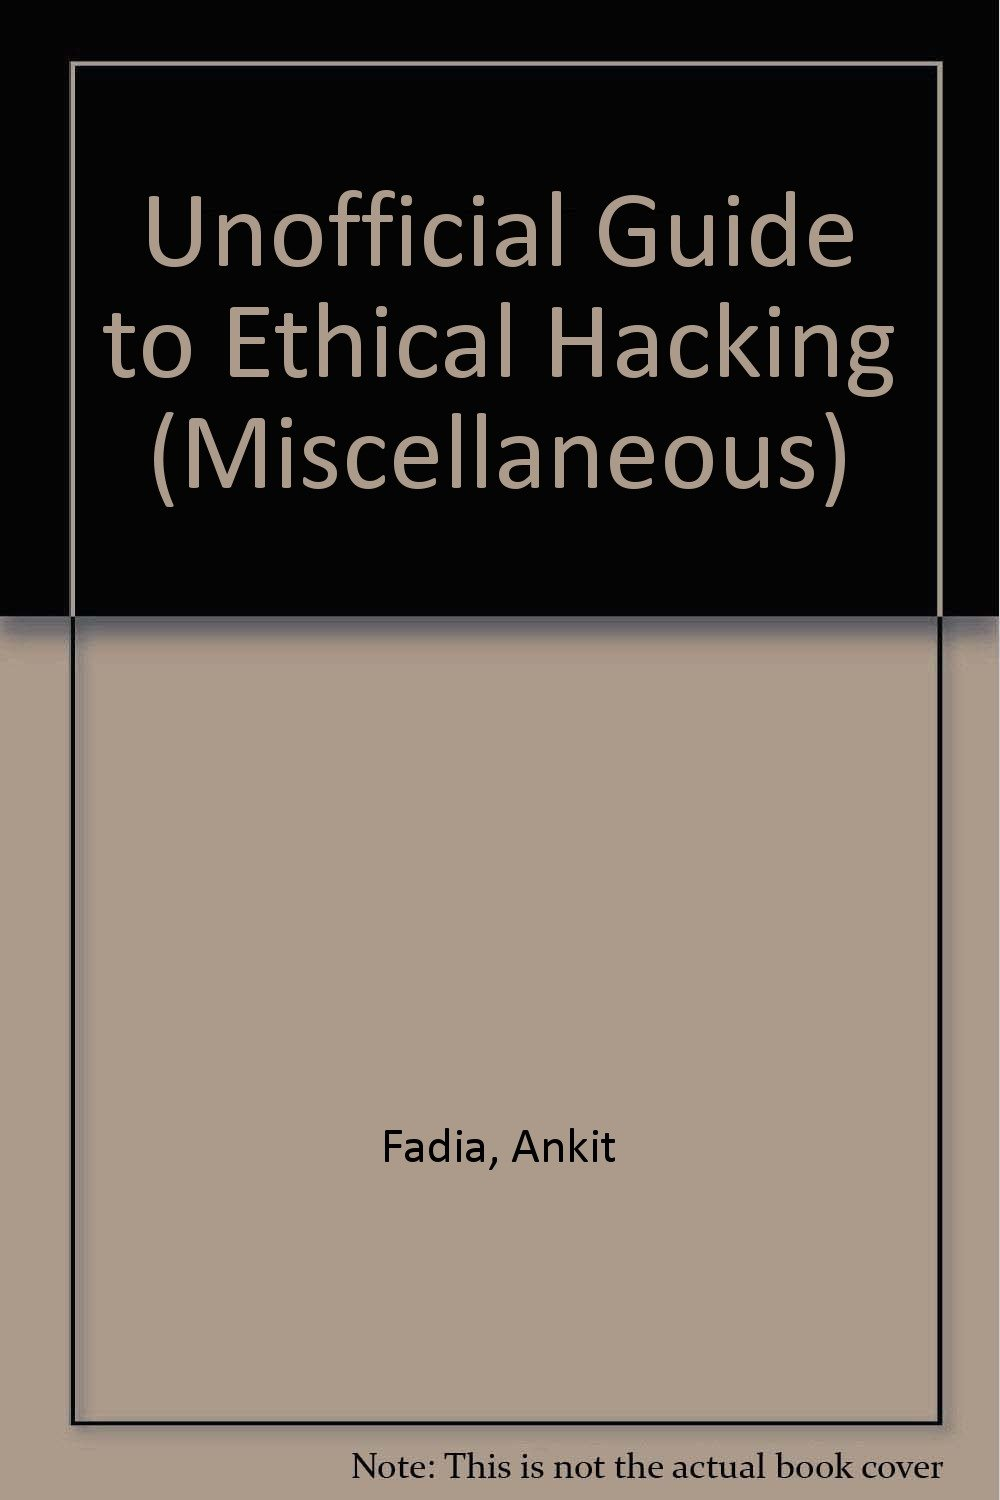 Unofficial Guide to Ethical Hacking (Miscellaneous): Amazon.co.uk: Ankit  Fadia: 9780613916813: Books